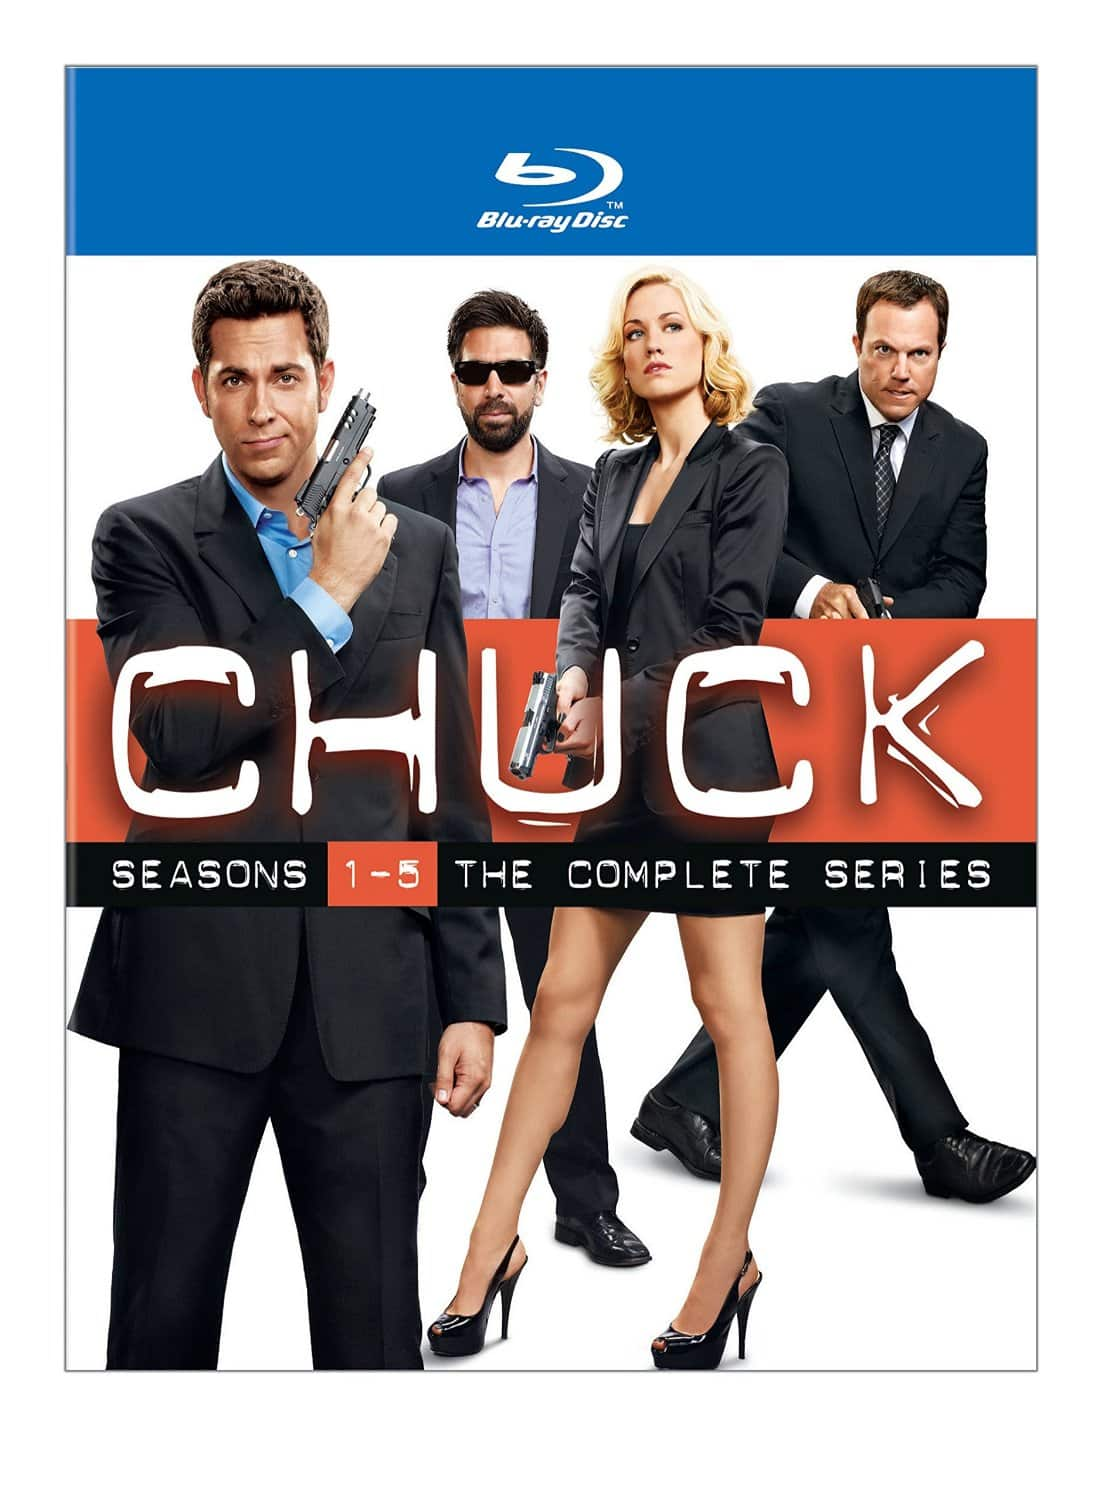 Chuck: The Complete Series (Blu-ray)  $40